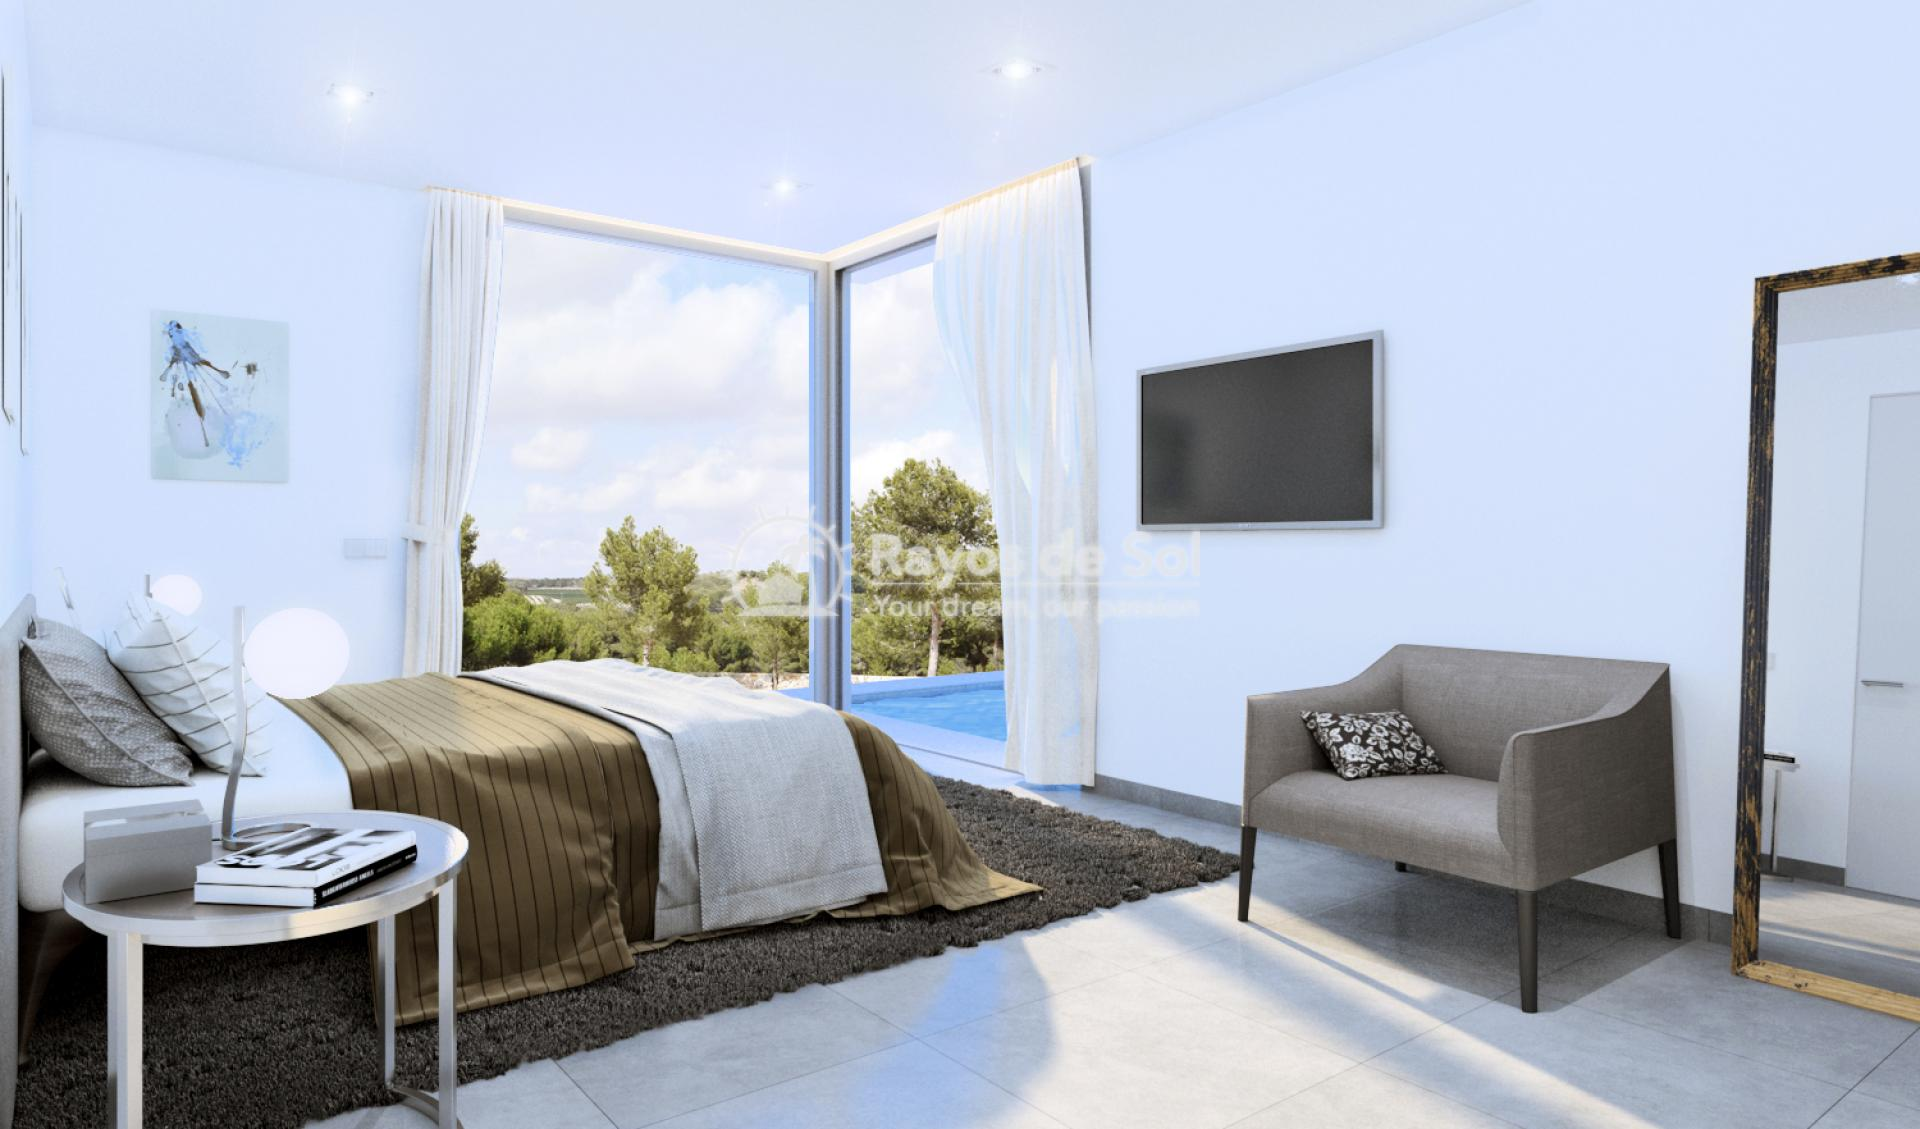 Single-storey detached villa  in Las Colinas, Orihuela Costa, Costa Blanca (OCGEMI26) - 9